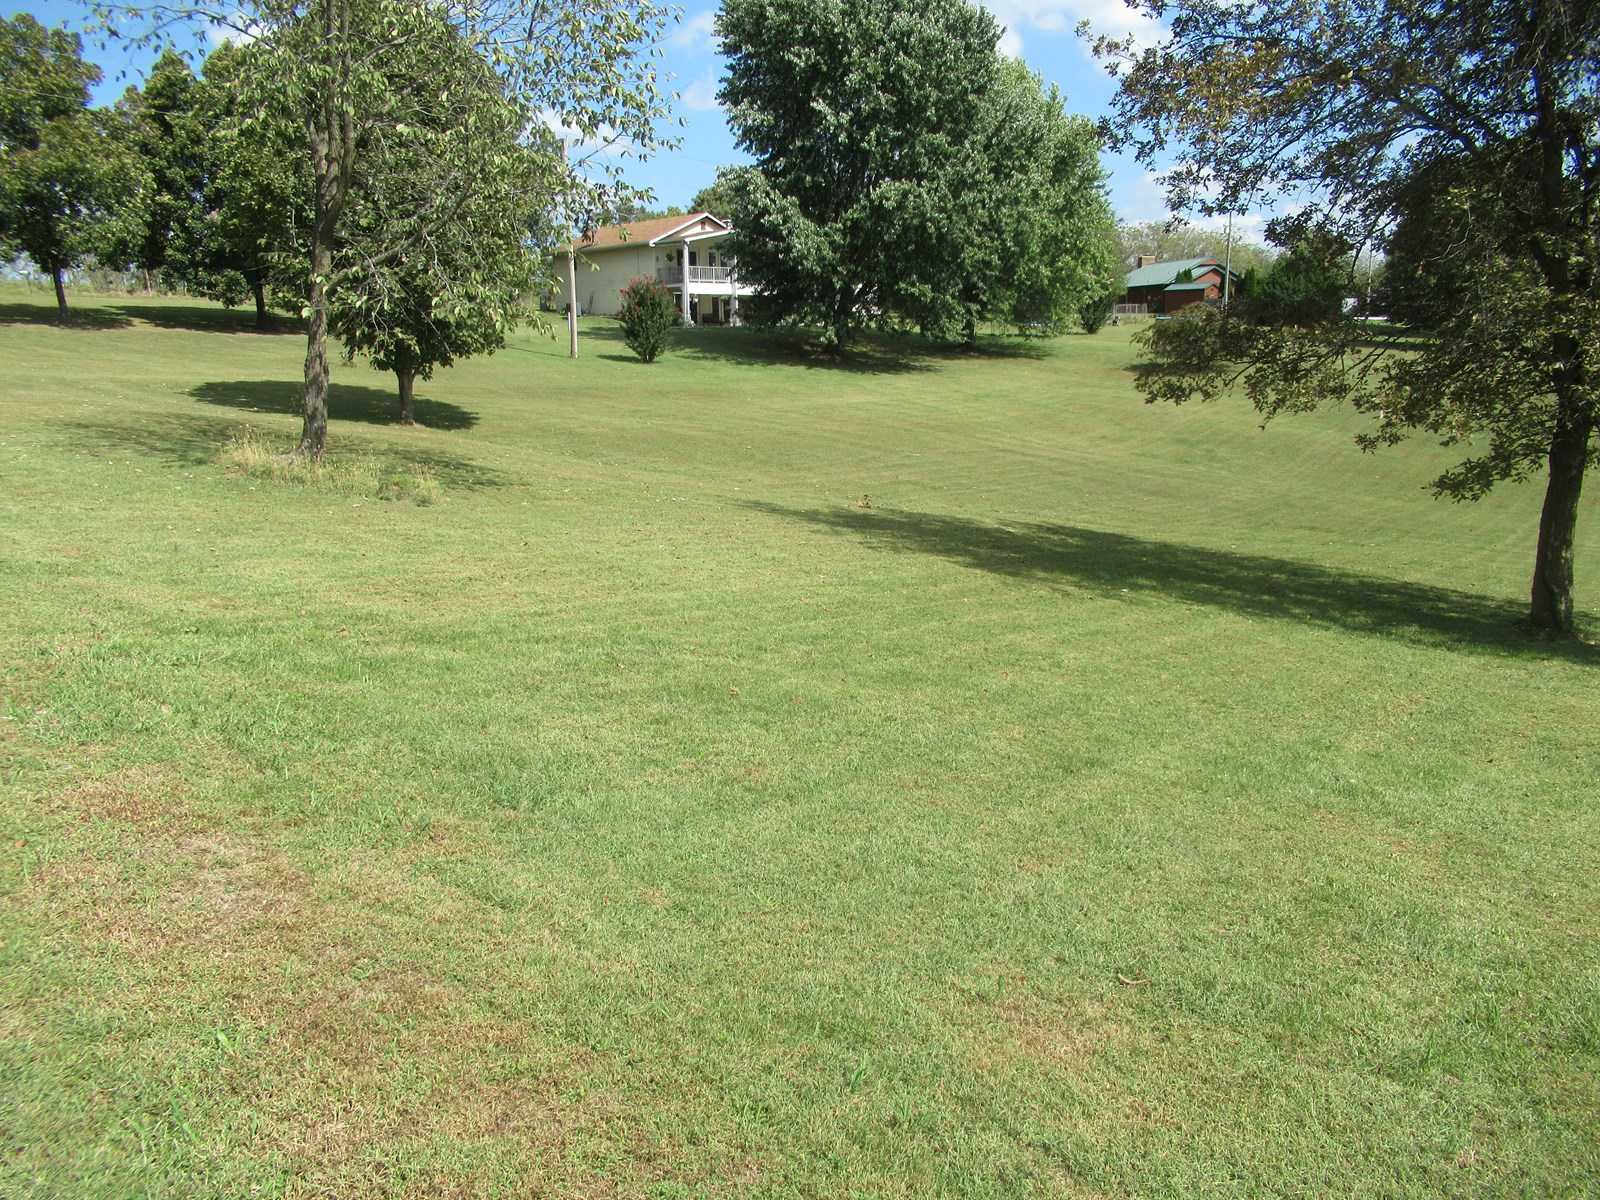 2 Lots For Sale in Lowes Lakeview Addison , Greenfield, Mo